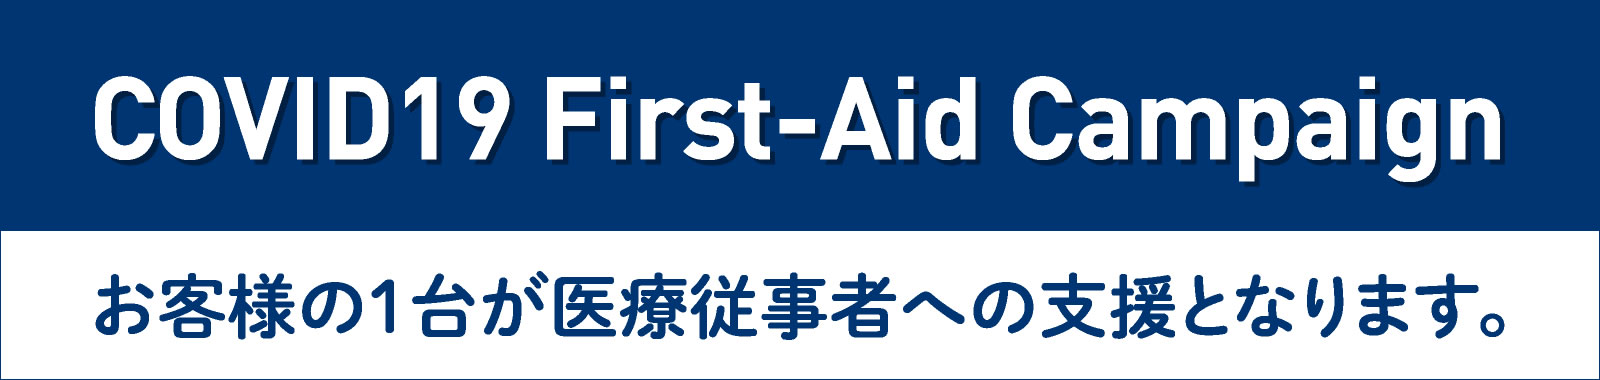 COVID19 First-Aid Campaign